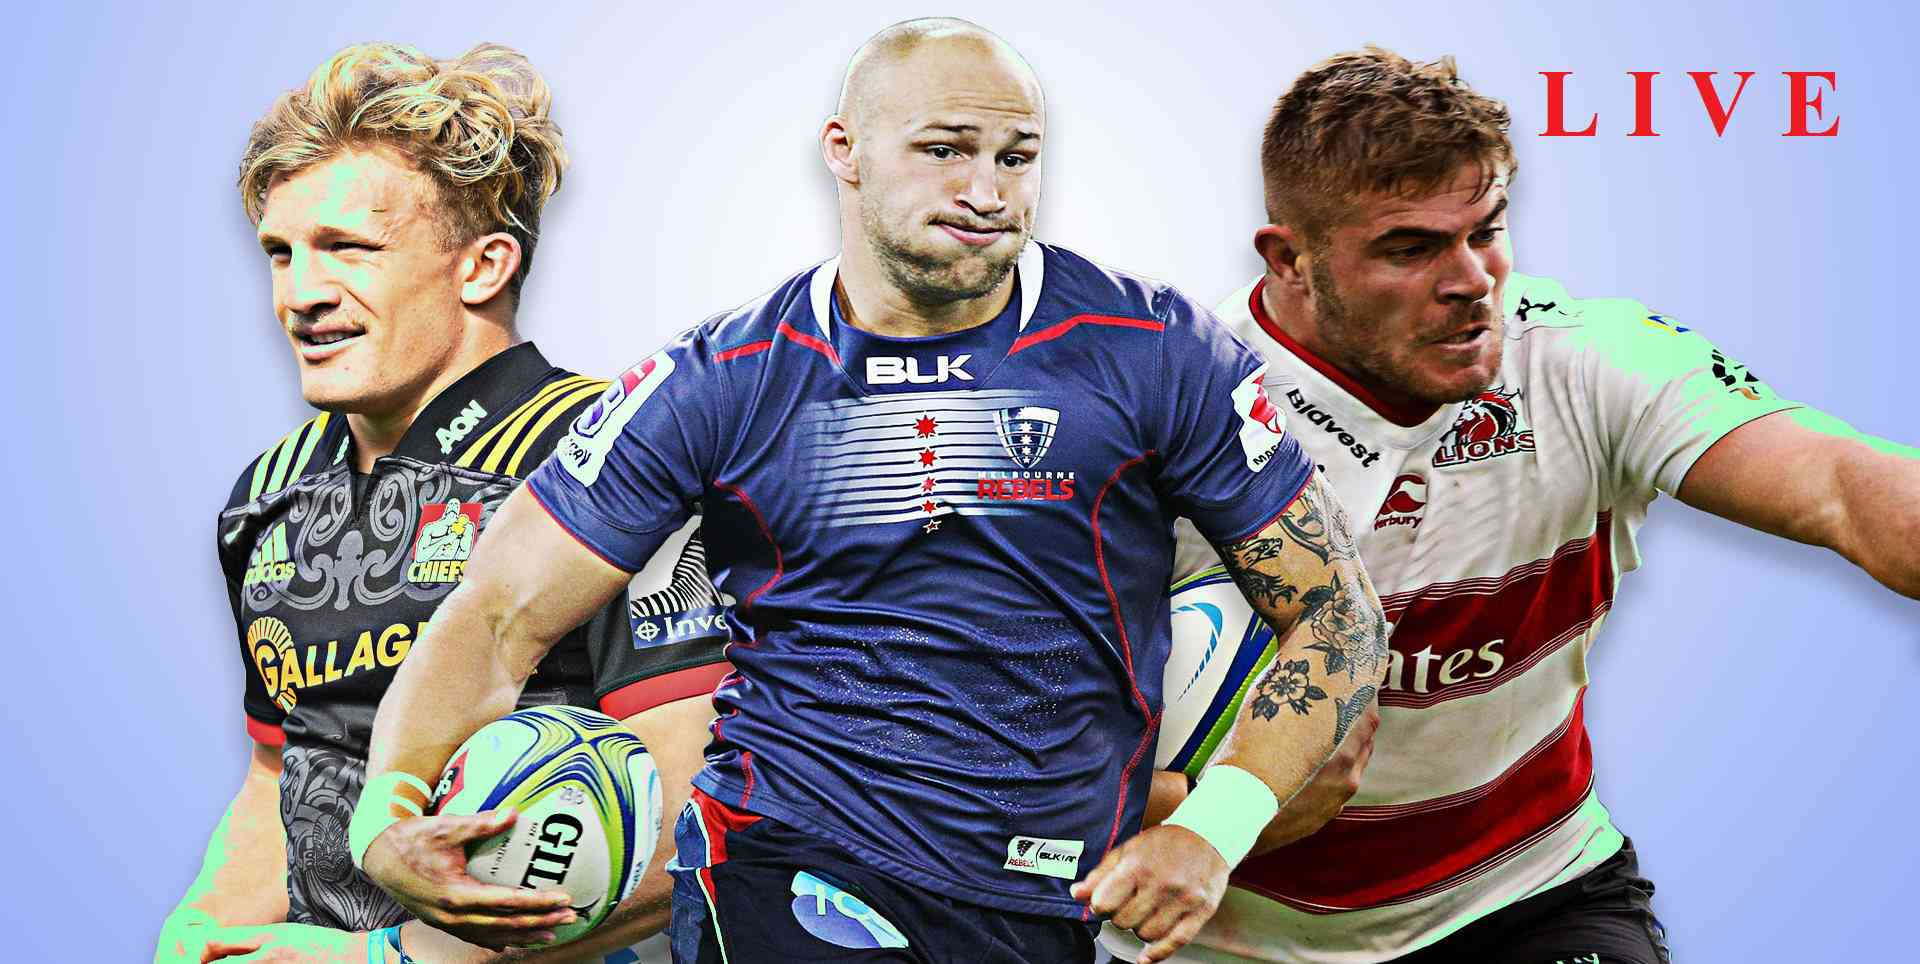 live-bulls-vs-crusaders-coverage